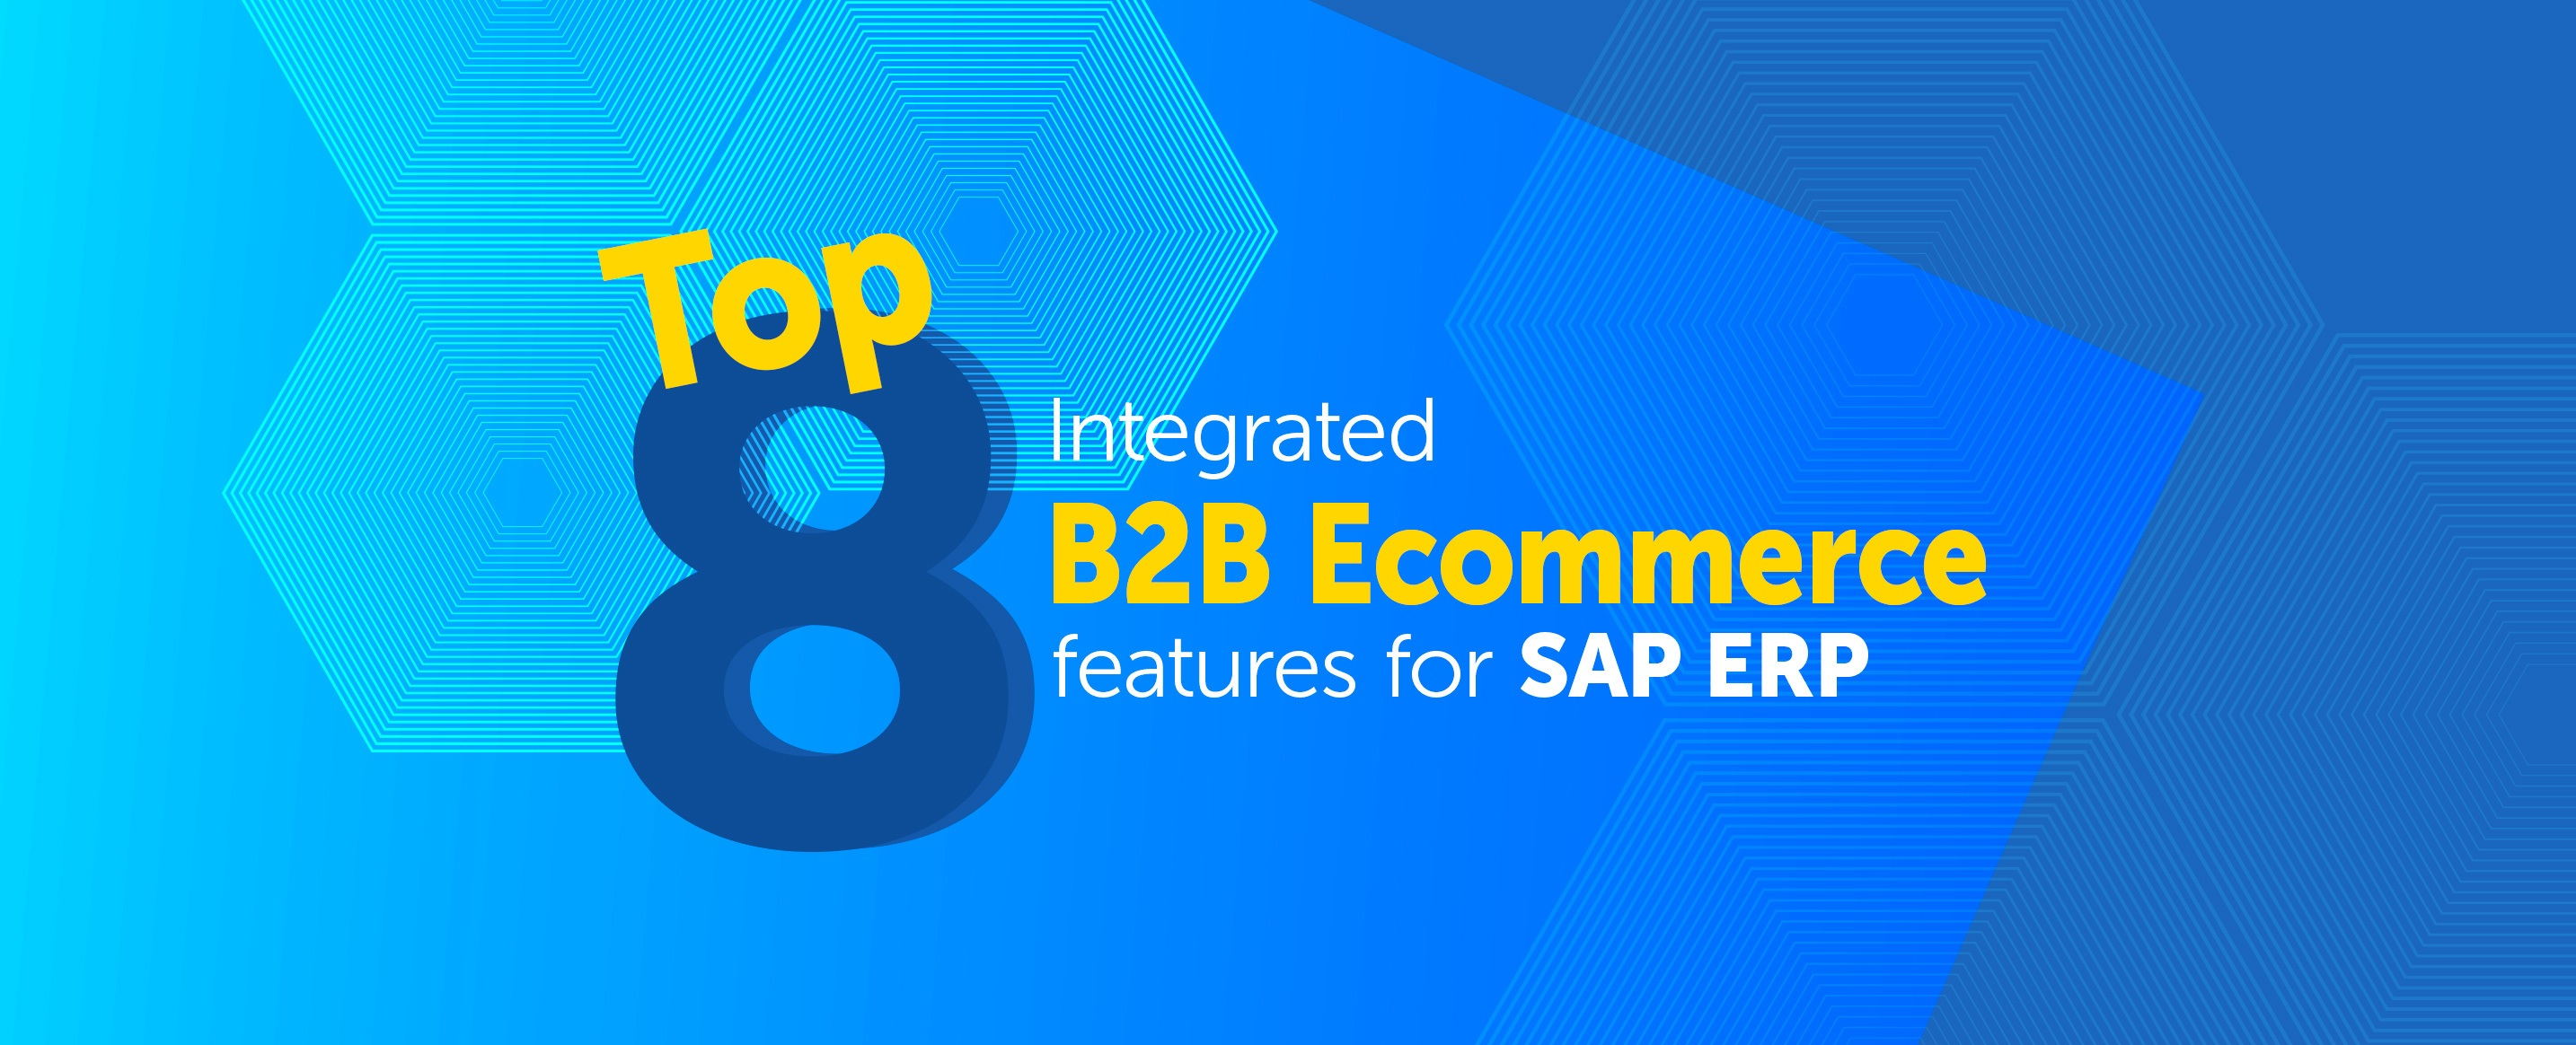 Top-8-Integrated-B2B-Ecommerce-features-for-your-SAP-ERP